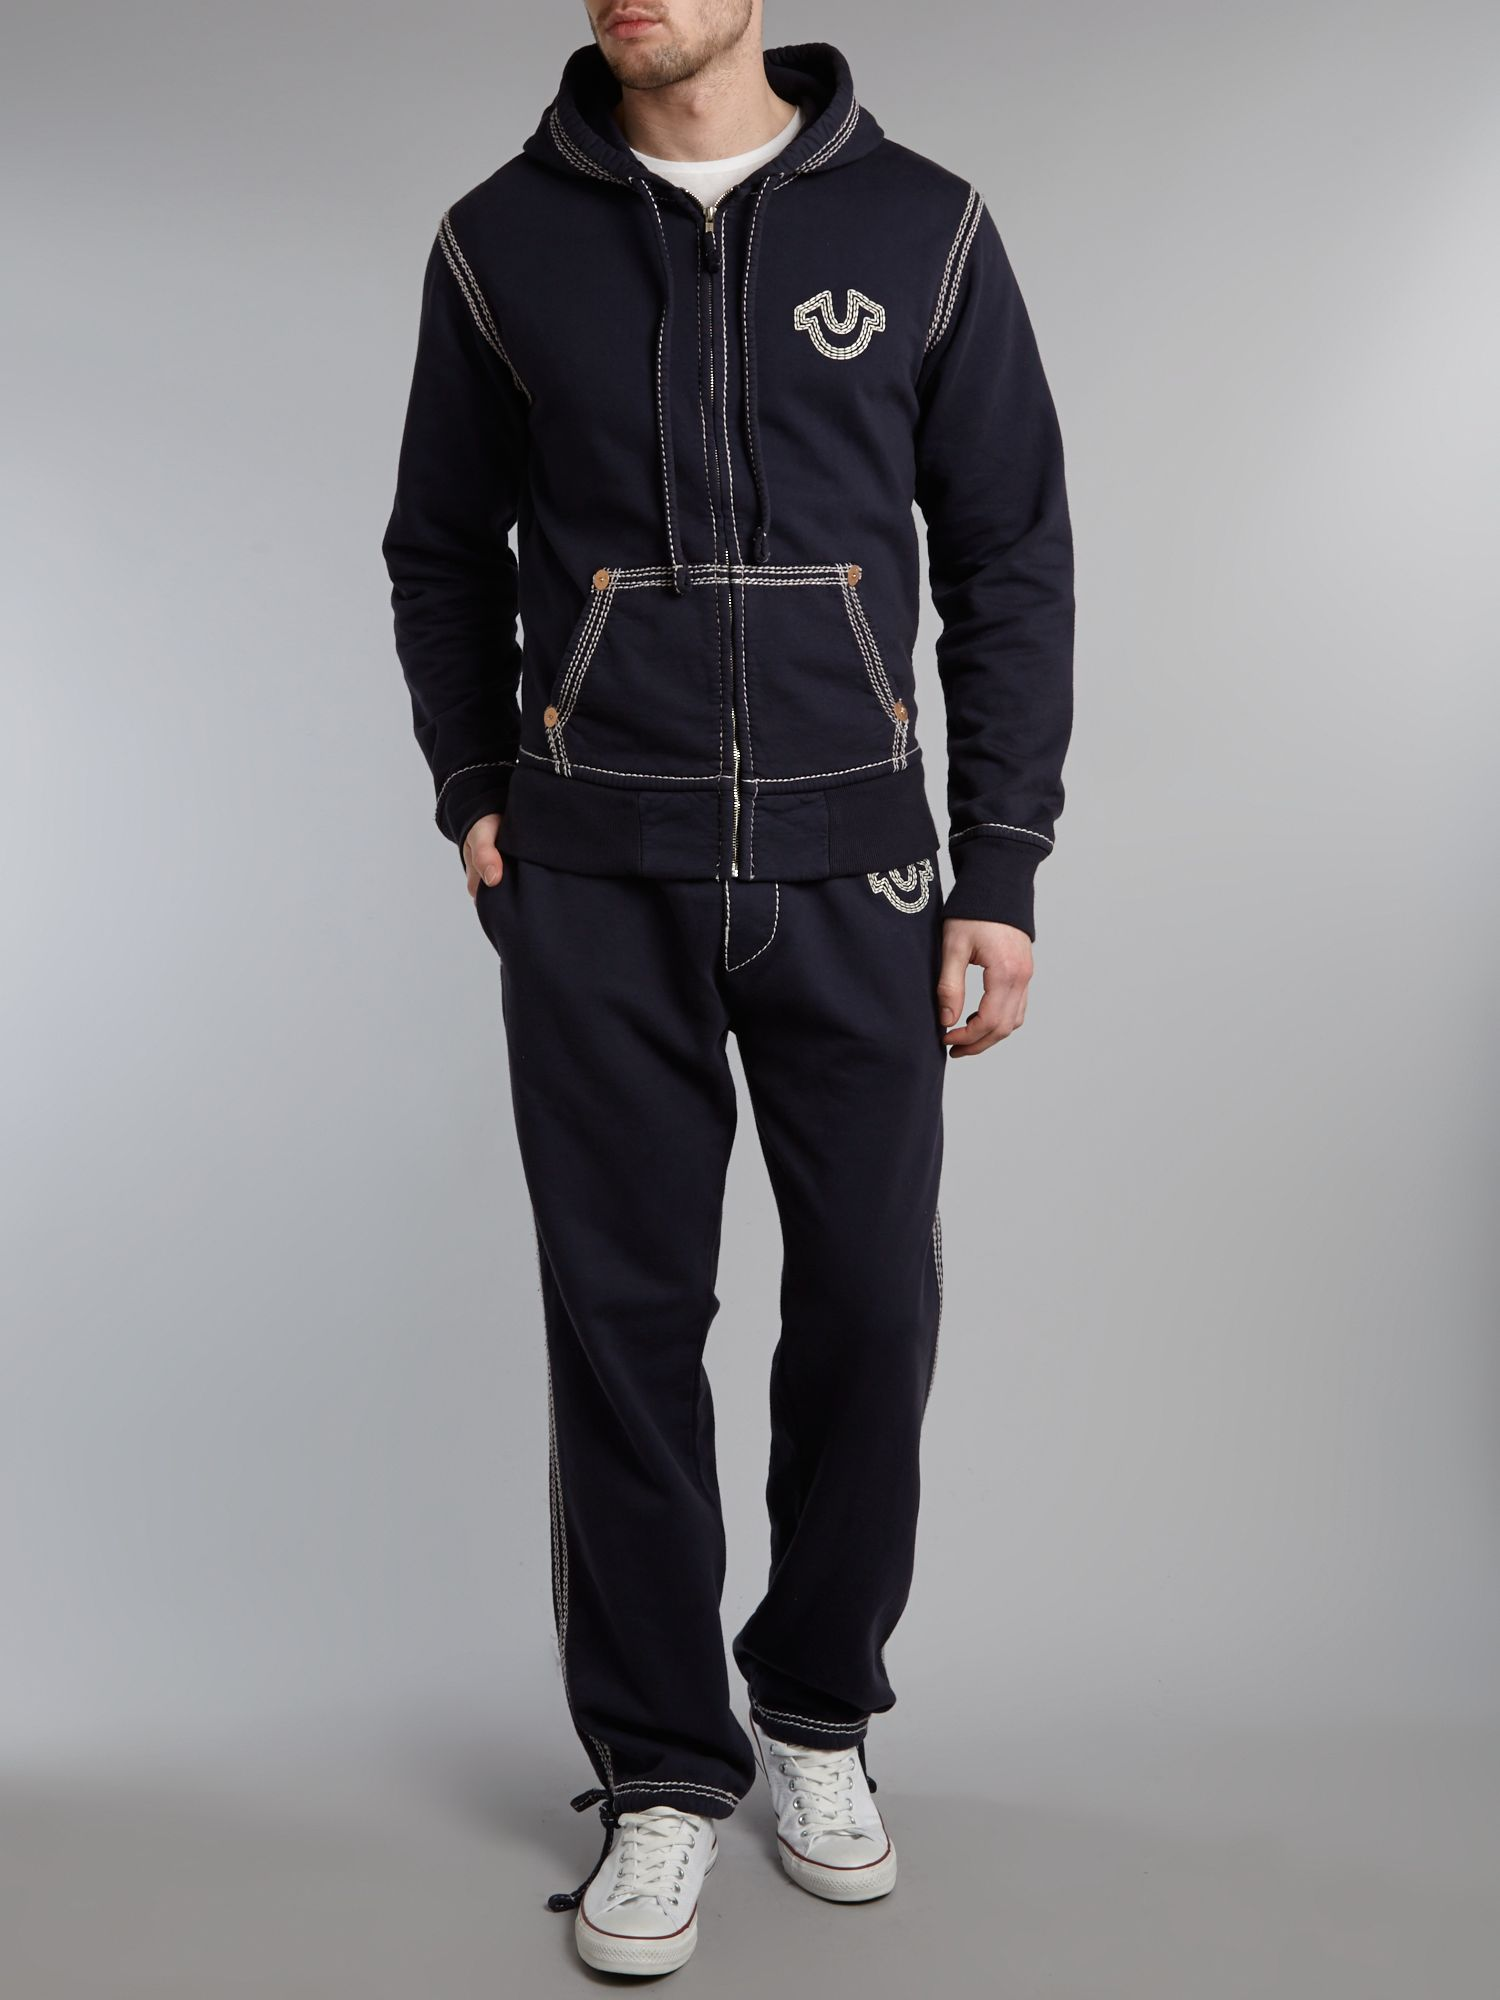 true religion sweat suit men photo - 1